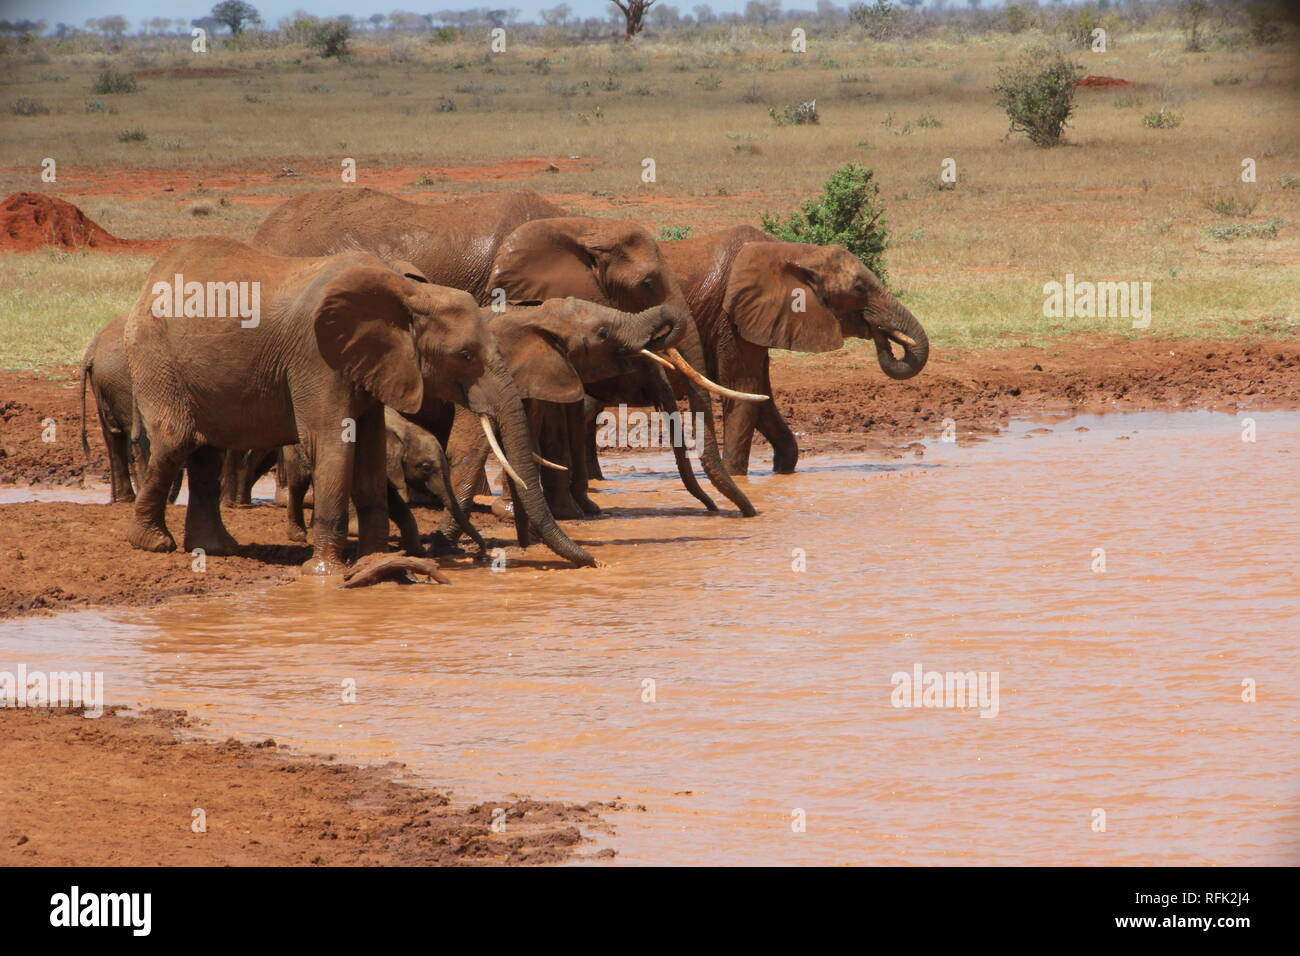 A family of African Elephants (Loxodonta africana) drinking  in a savannah pond at Tsavo East National Park, Kenya. - Stock Image